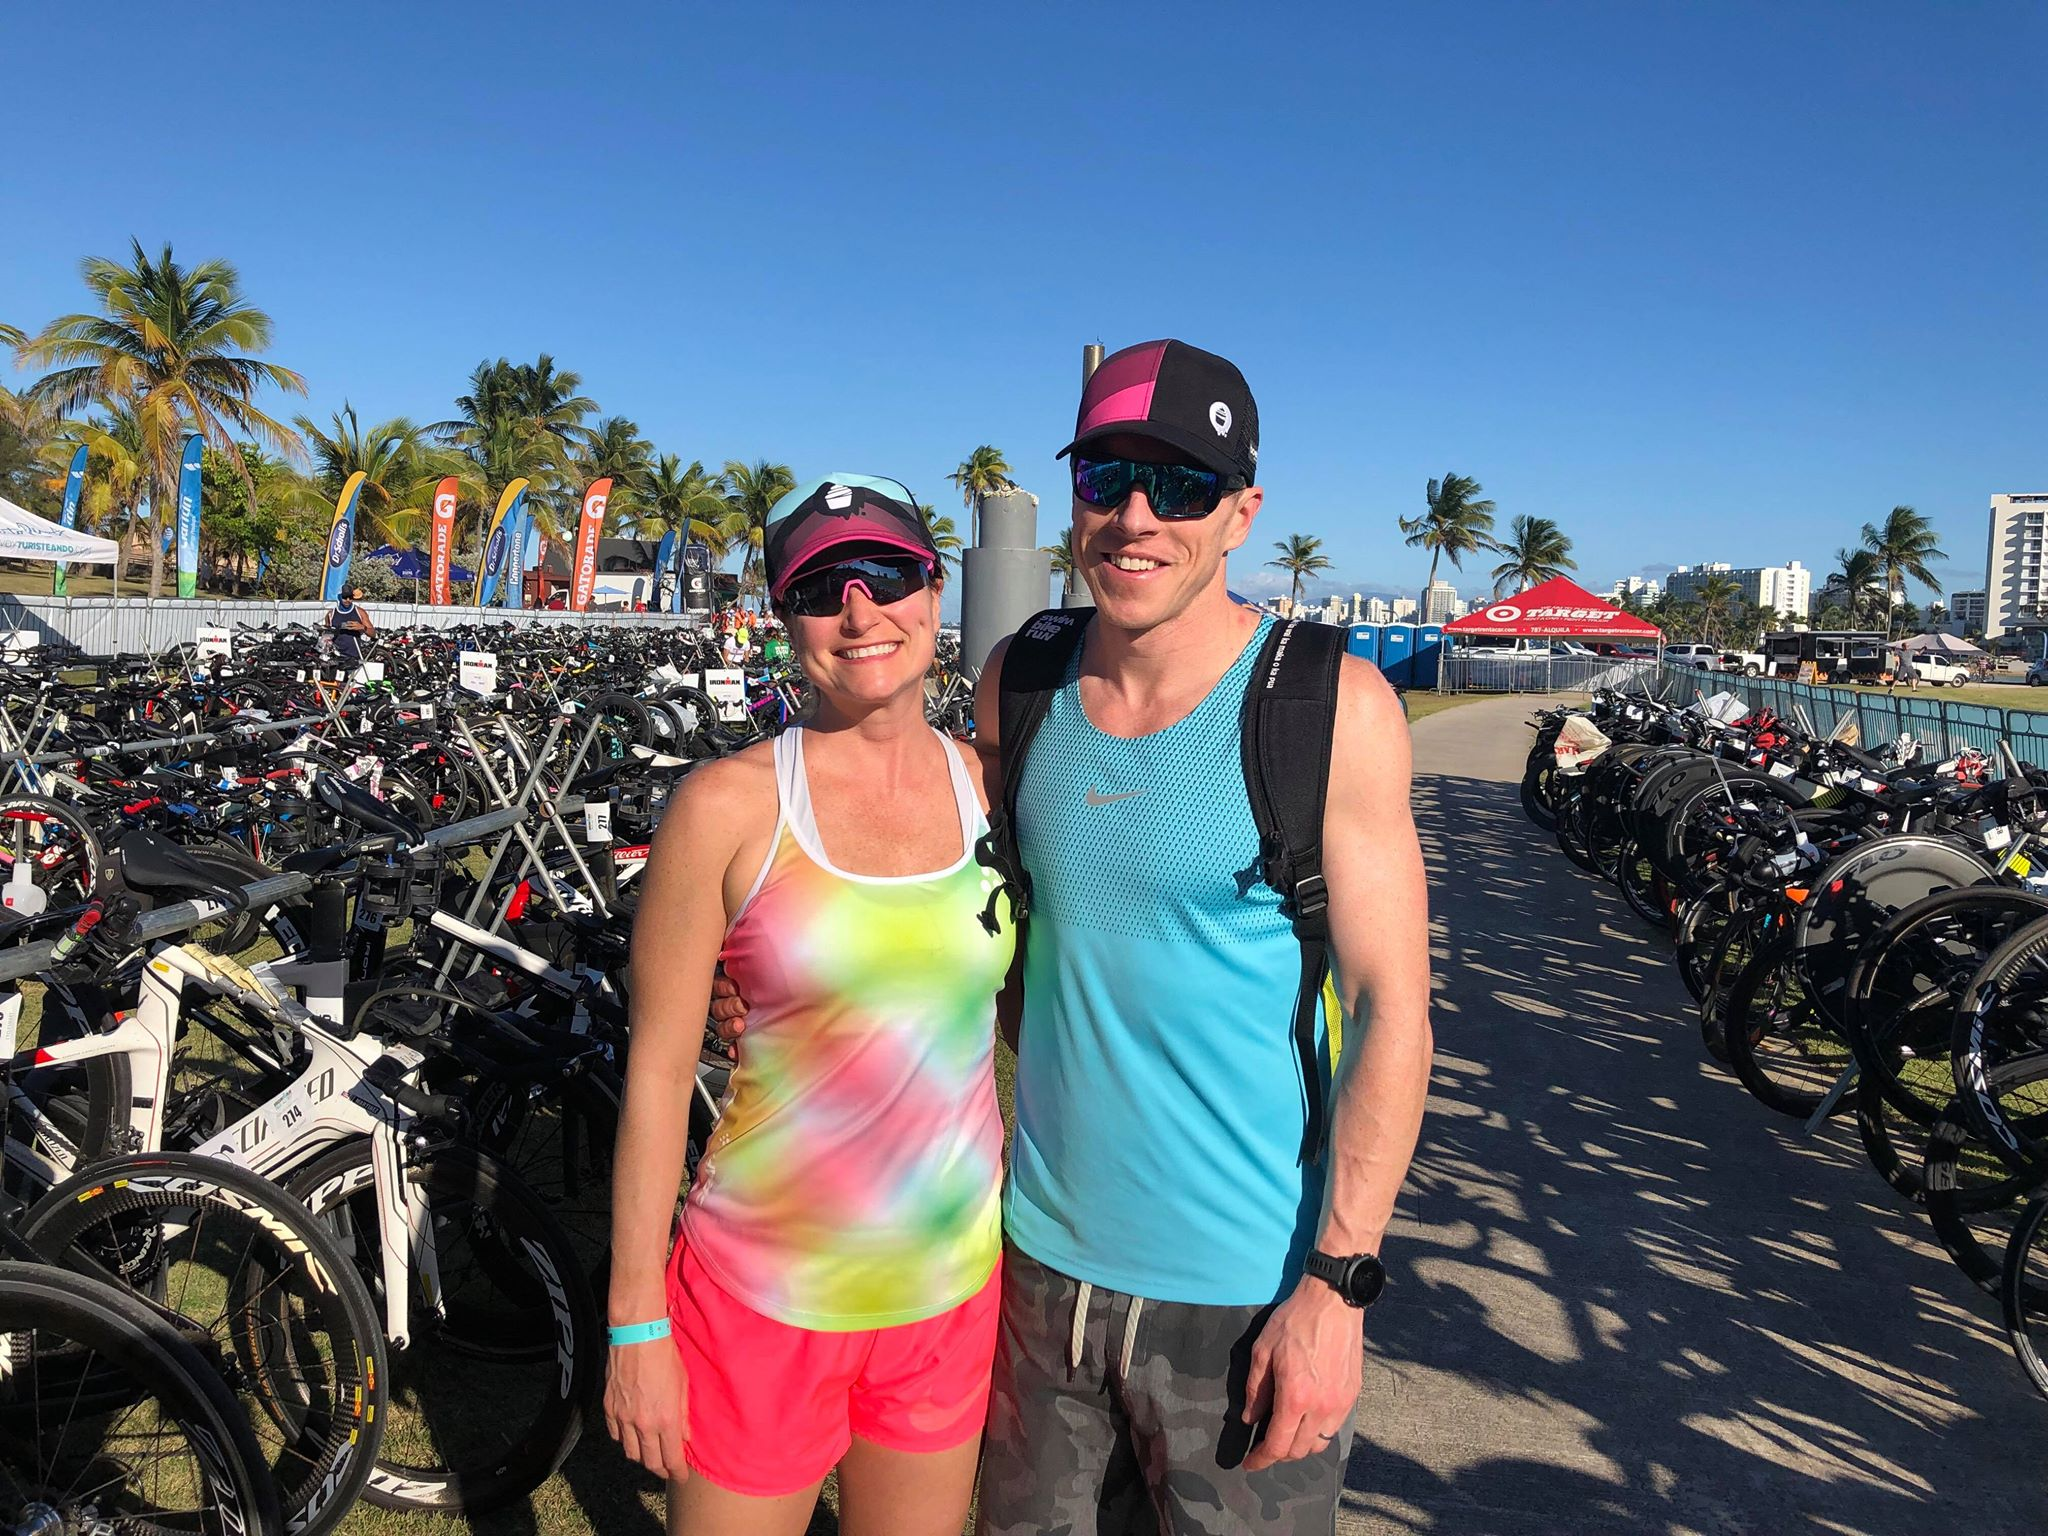 Coach_Terry_Wilson_Pursuit_of_The_Perfect_Race_IRONMAN_Puerto_Rico_Shannon_Florea_1.jpg